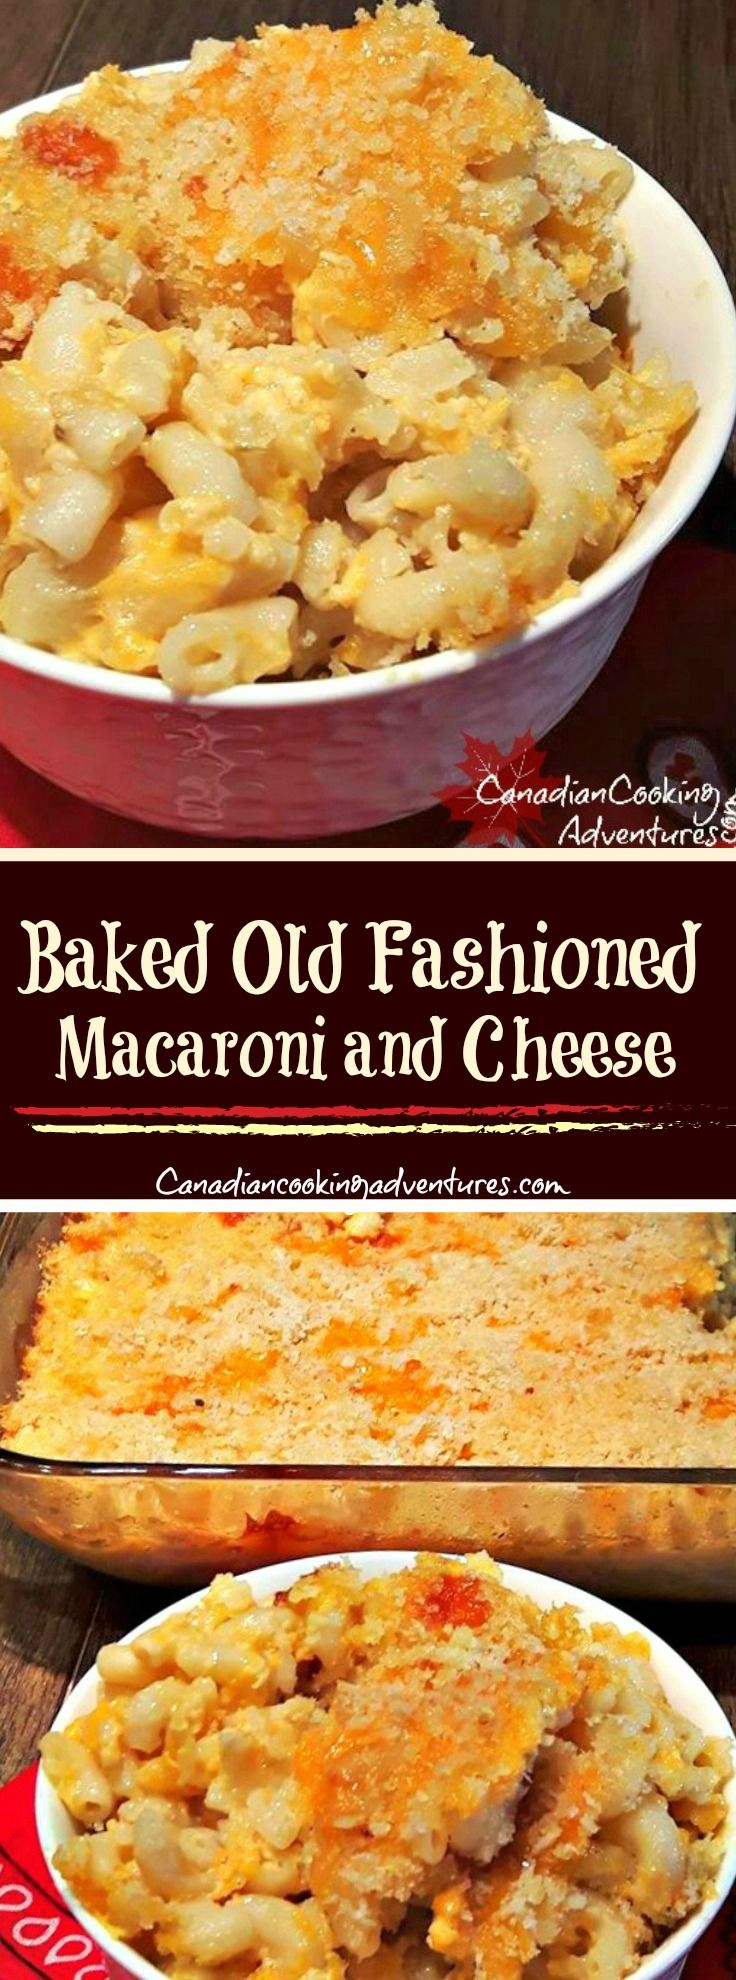 Baked Old Fashioned Macaroni and Cheese  #macaroni #cheese #cheesy #canadiancookingadventures #nomnom #tasty #cooking #foodblogger #nomnom #foodie #food #pasta #baked